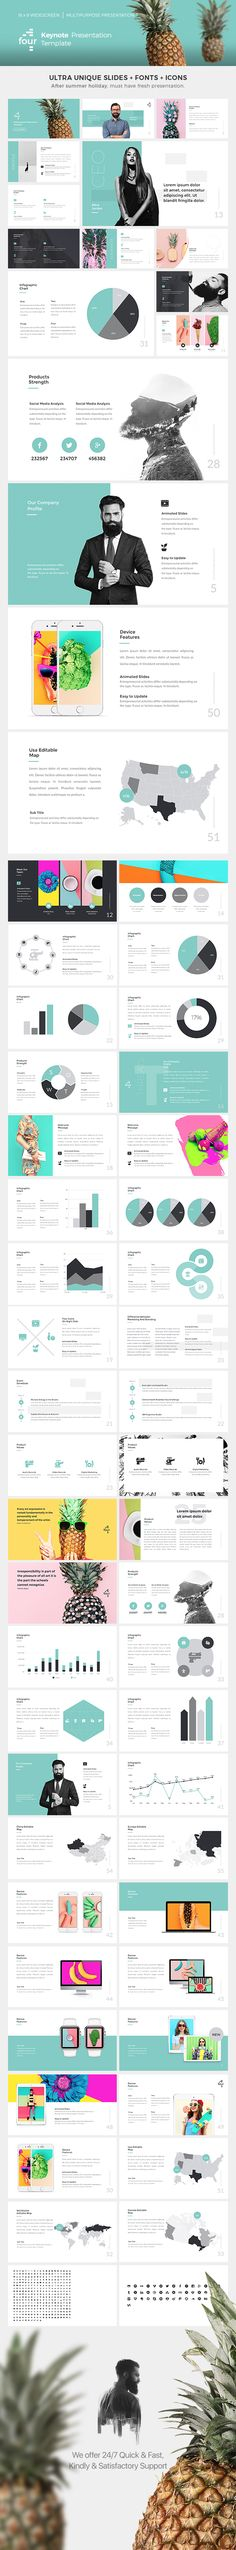 Four - Keynote Presentation Template. Download here: https://graphicriver.net/item/four-keynote-presentation-template/17552258?ref=ksioks